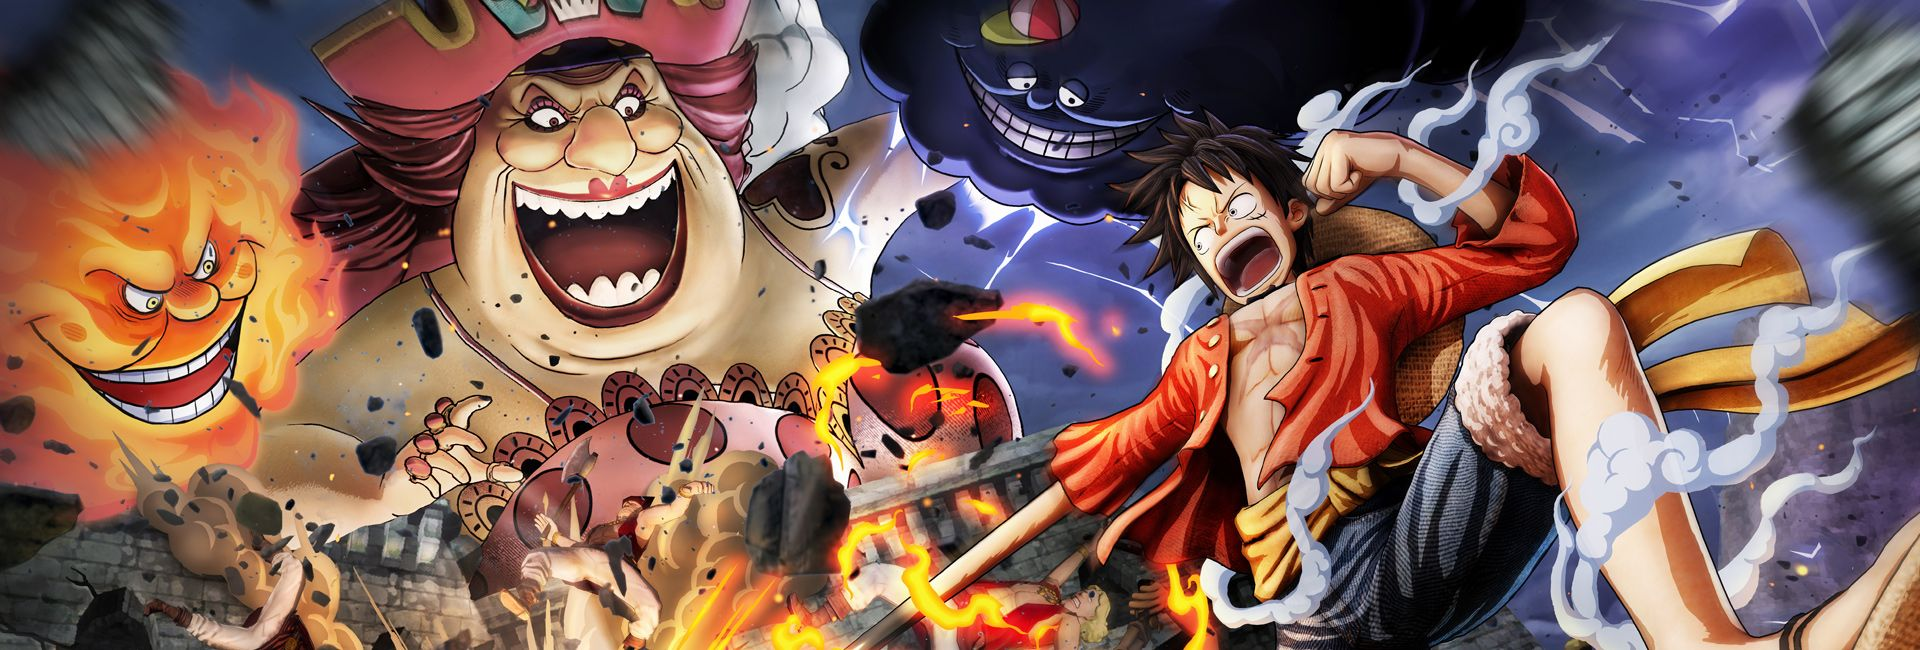 One Piece Pirate Warriors 4 (Playstation 4)